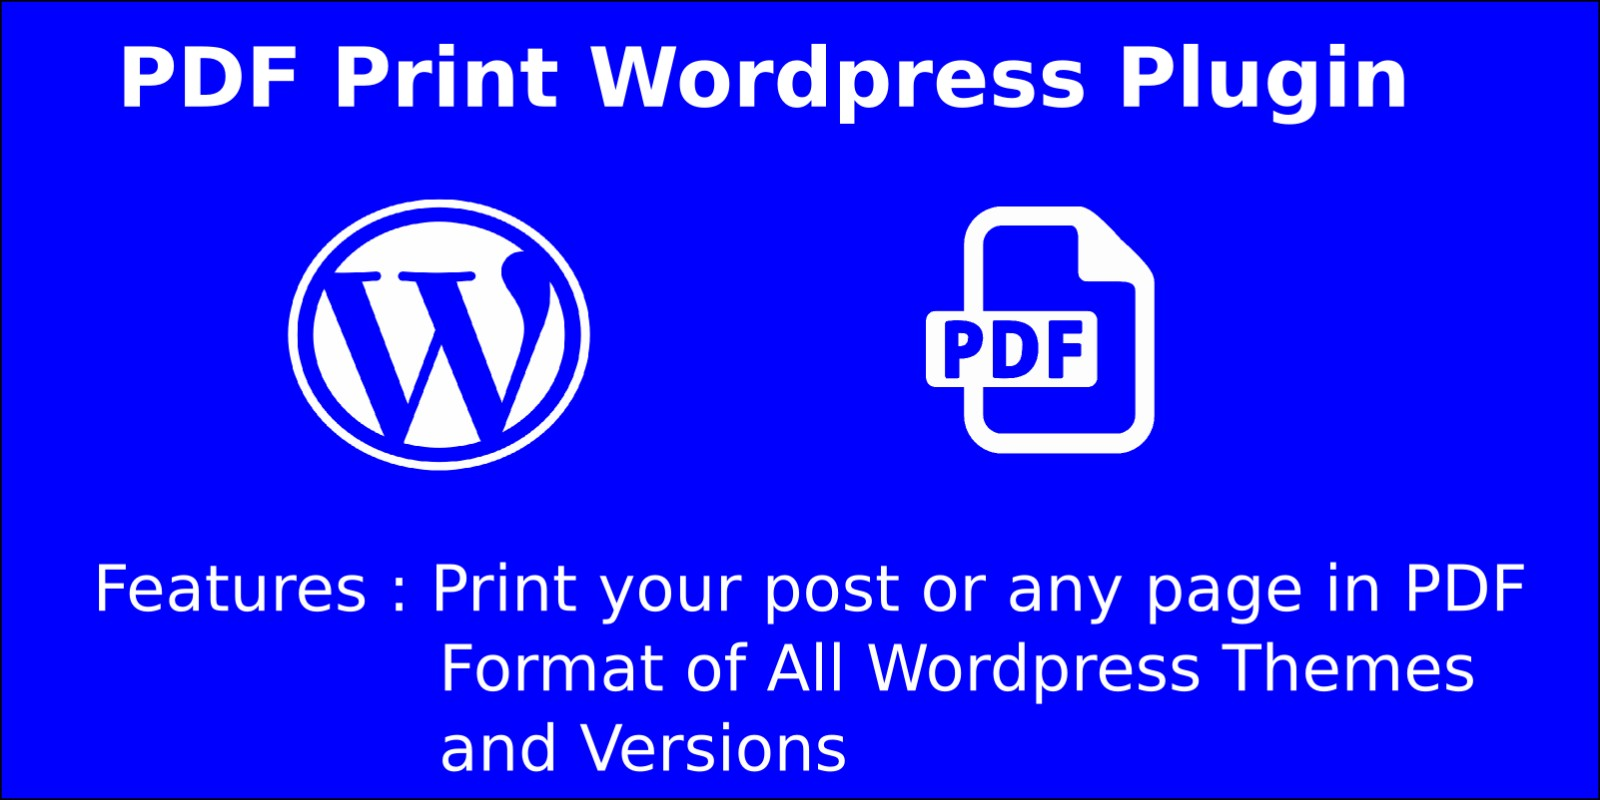 PDF Print Wordpress Plugin